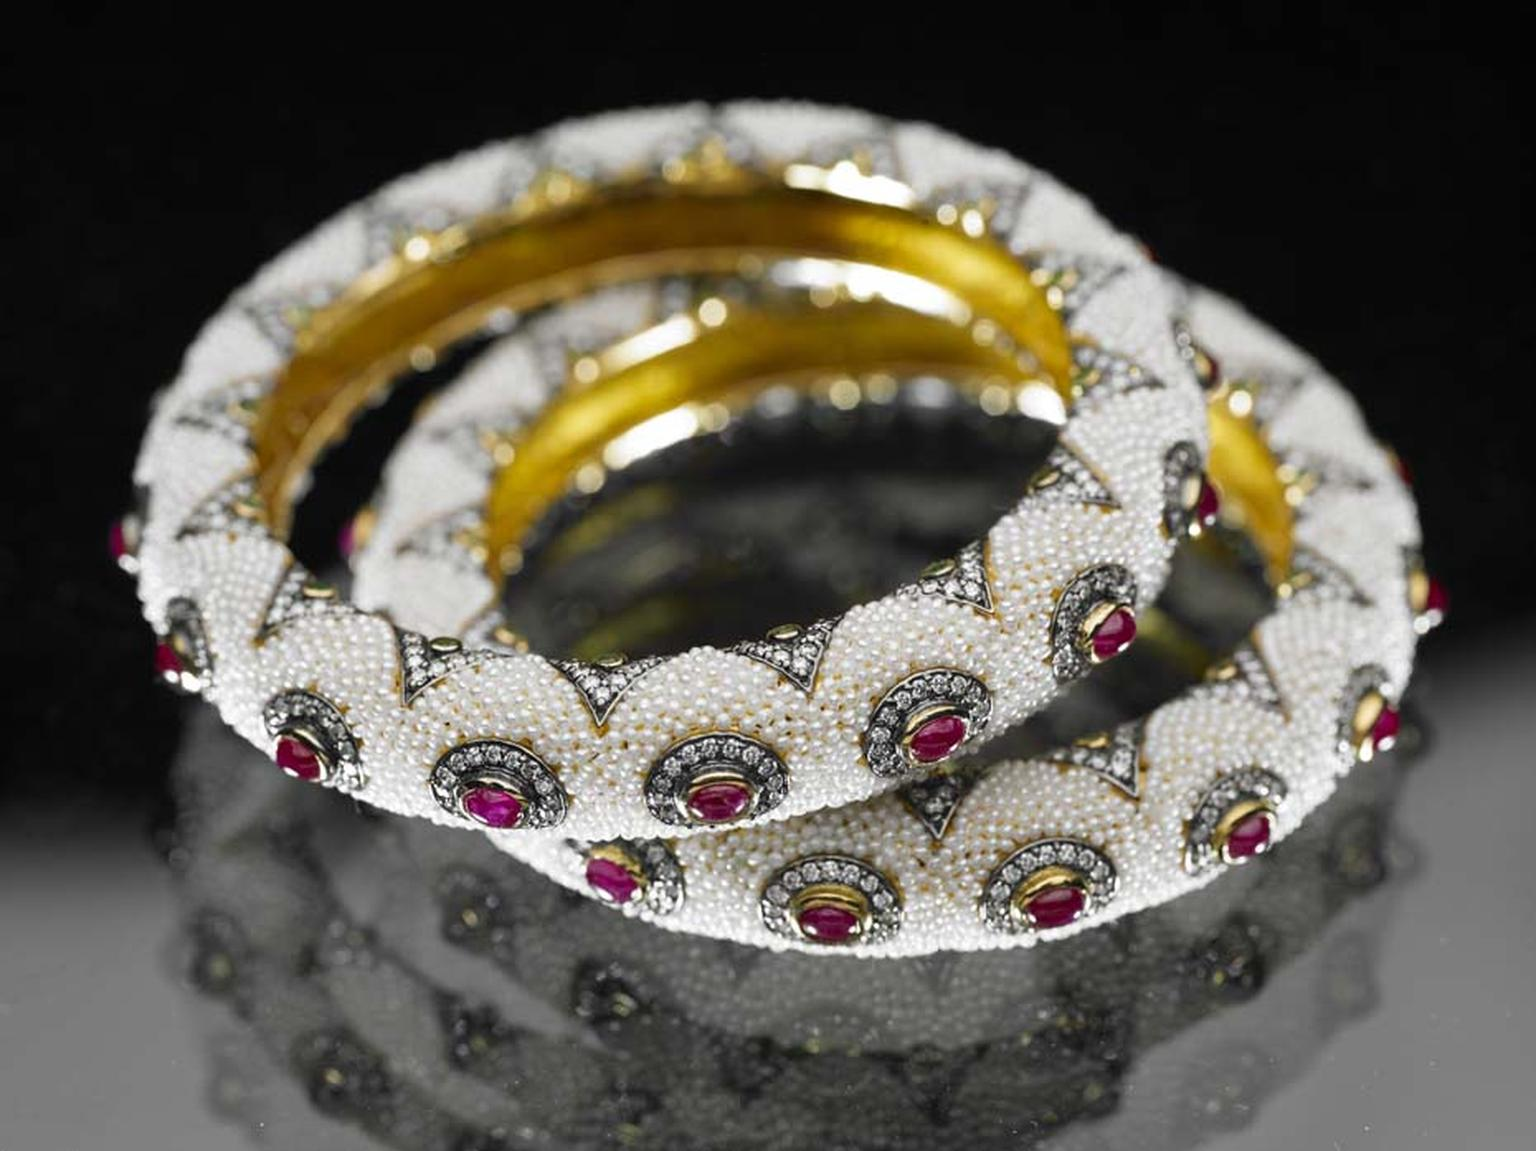 Moksh Taantvi collection bangles set with rubies, brilliant-cut diamonds and fine Japanese keshi pearls.